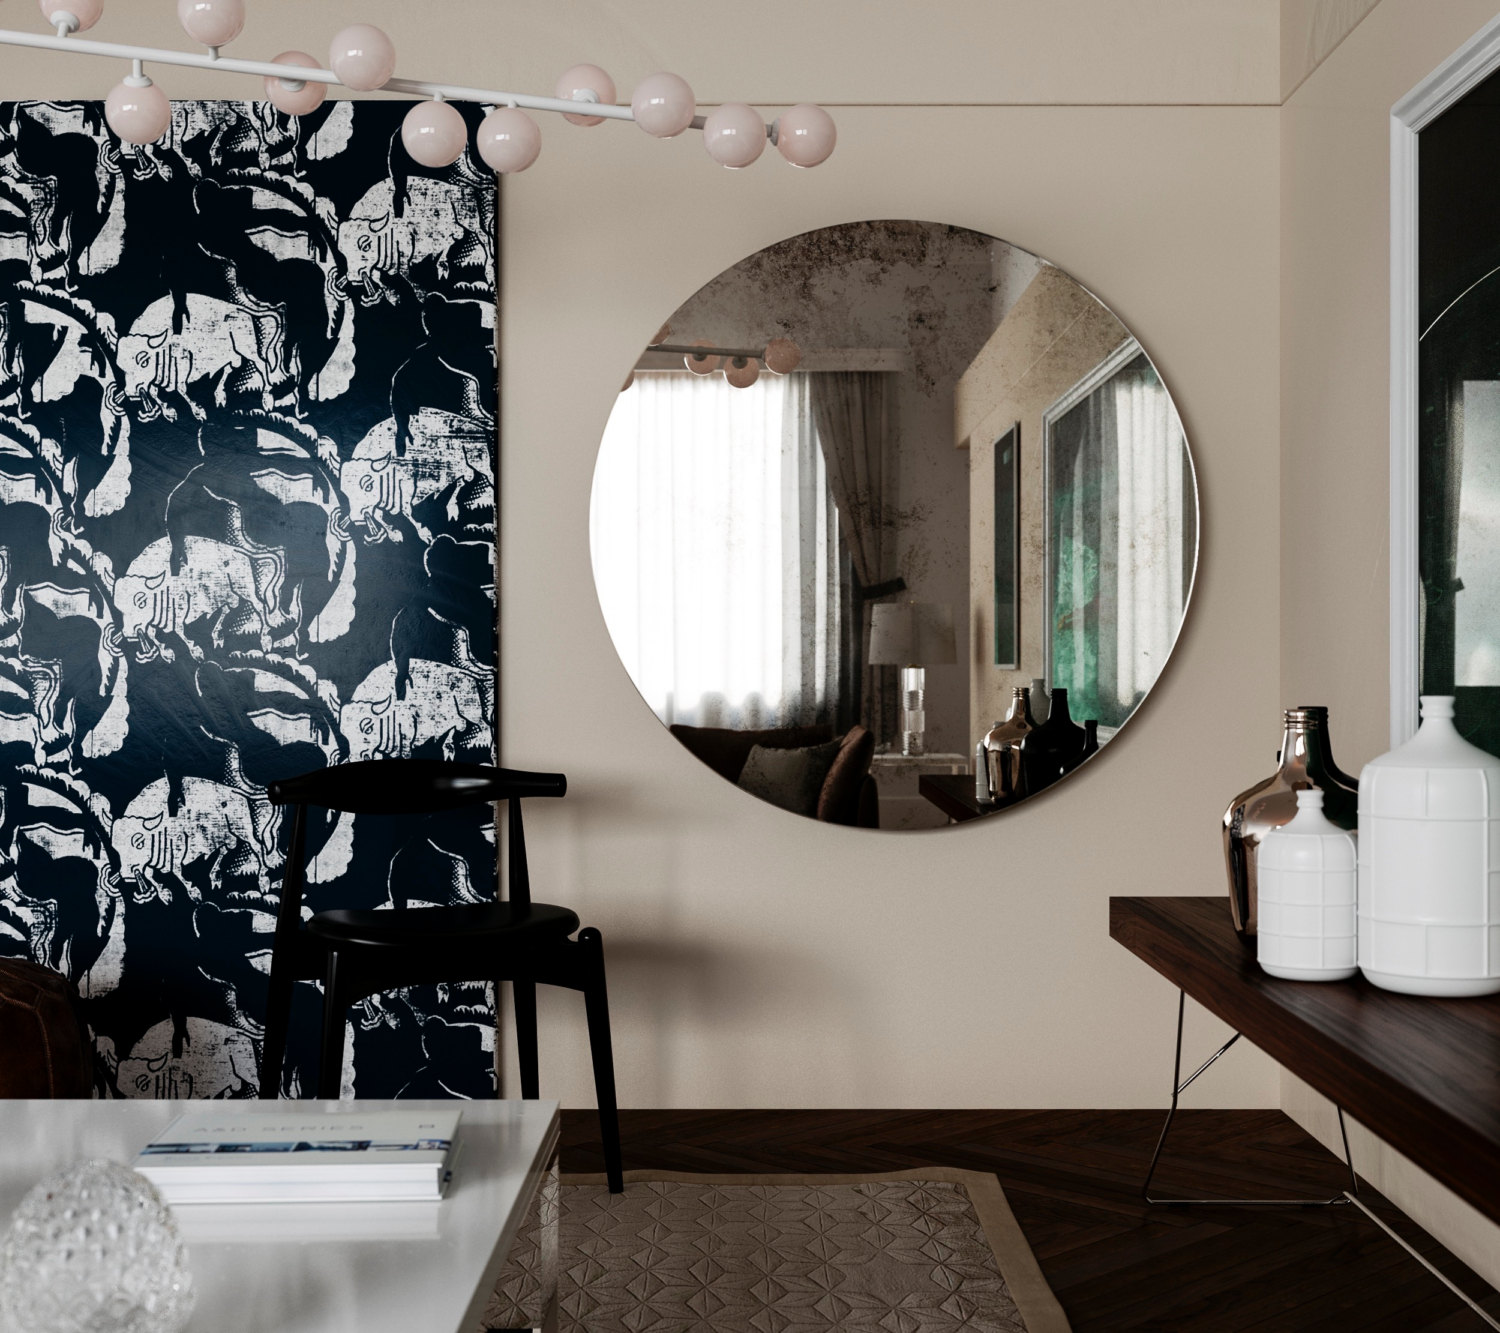 1930s wall mirror | Same Antiqued Mirror hung on Wall